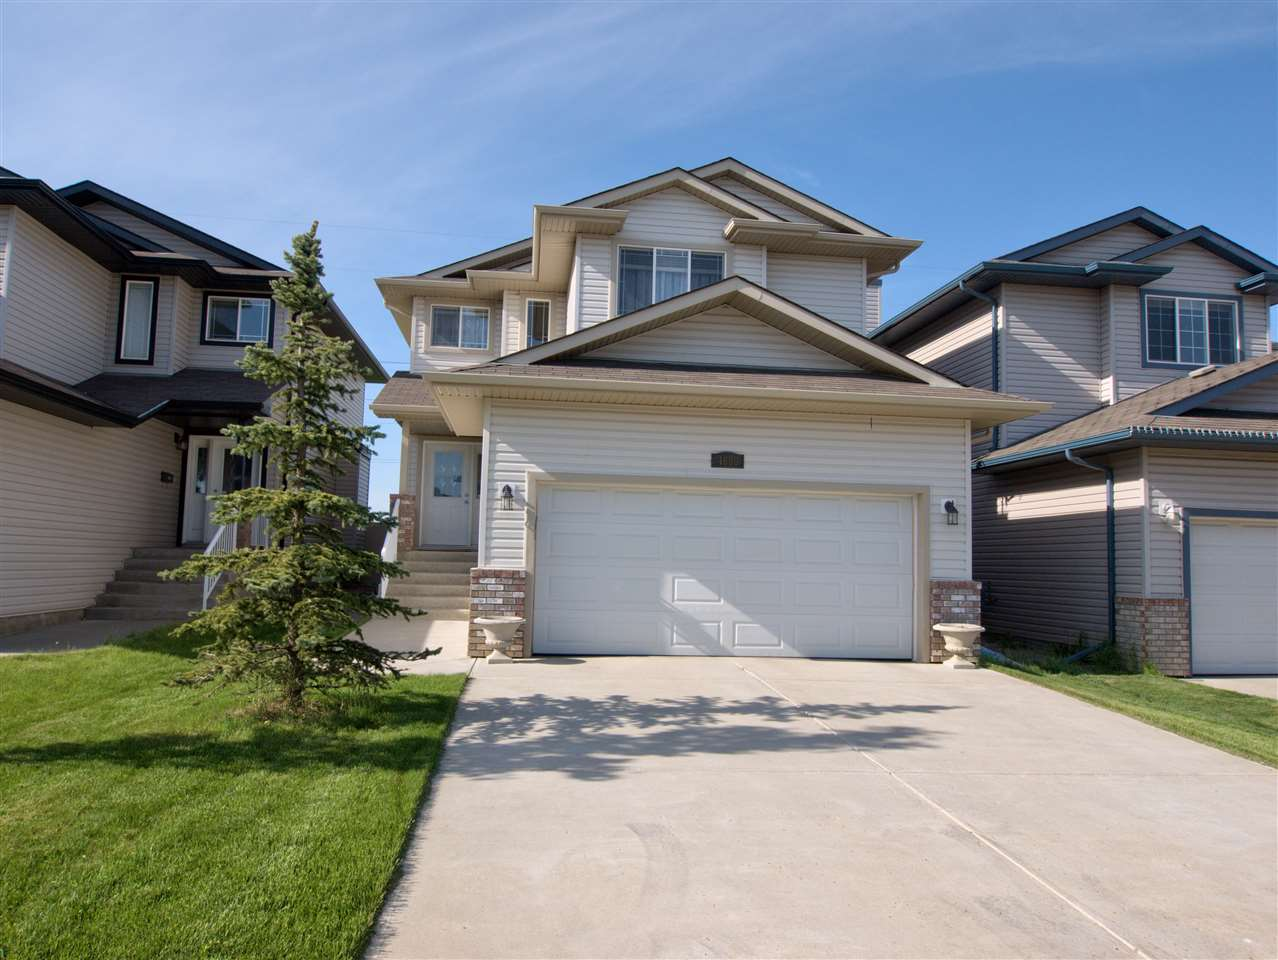 Main Photo: 4608 164A Avenue in Edmonton: Zone 03 House for sale : MLS(r) # E4067169